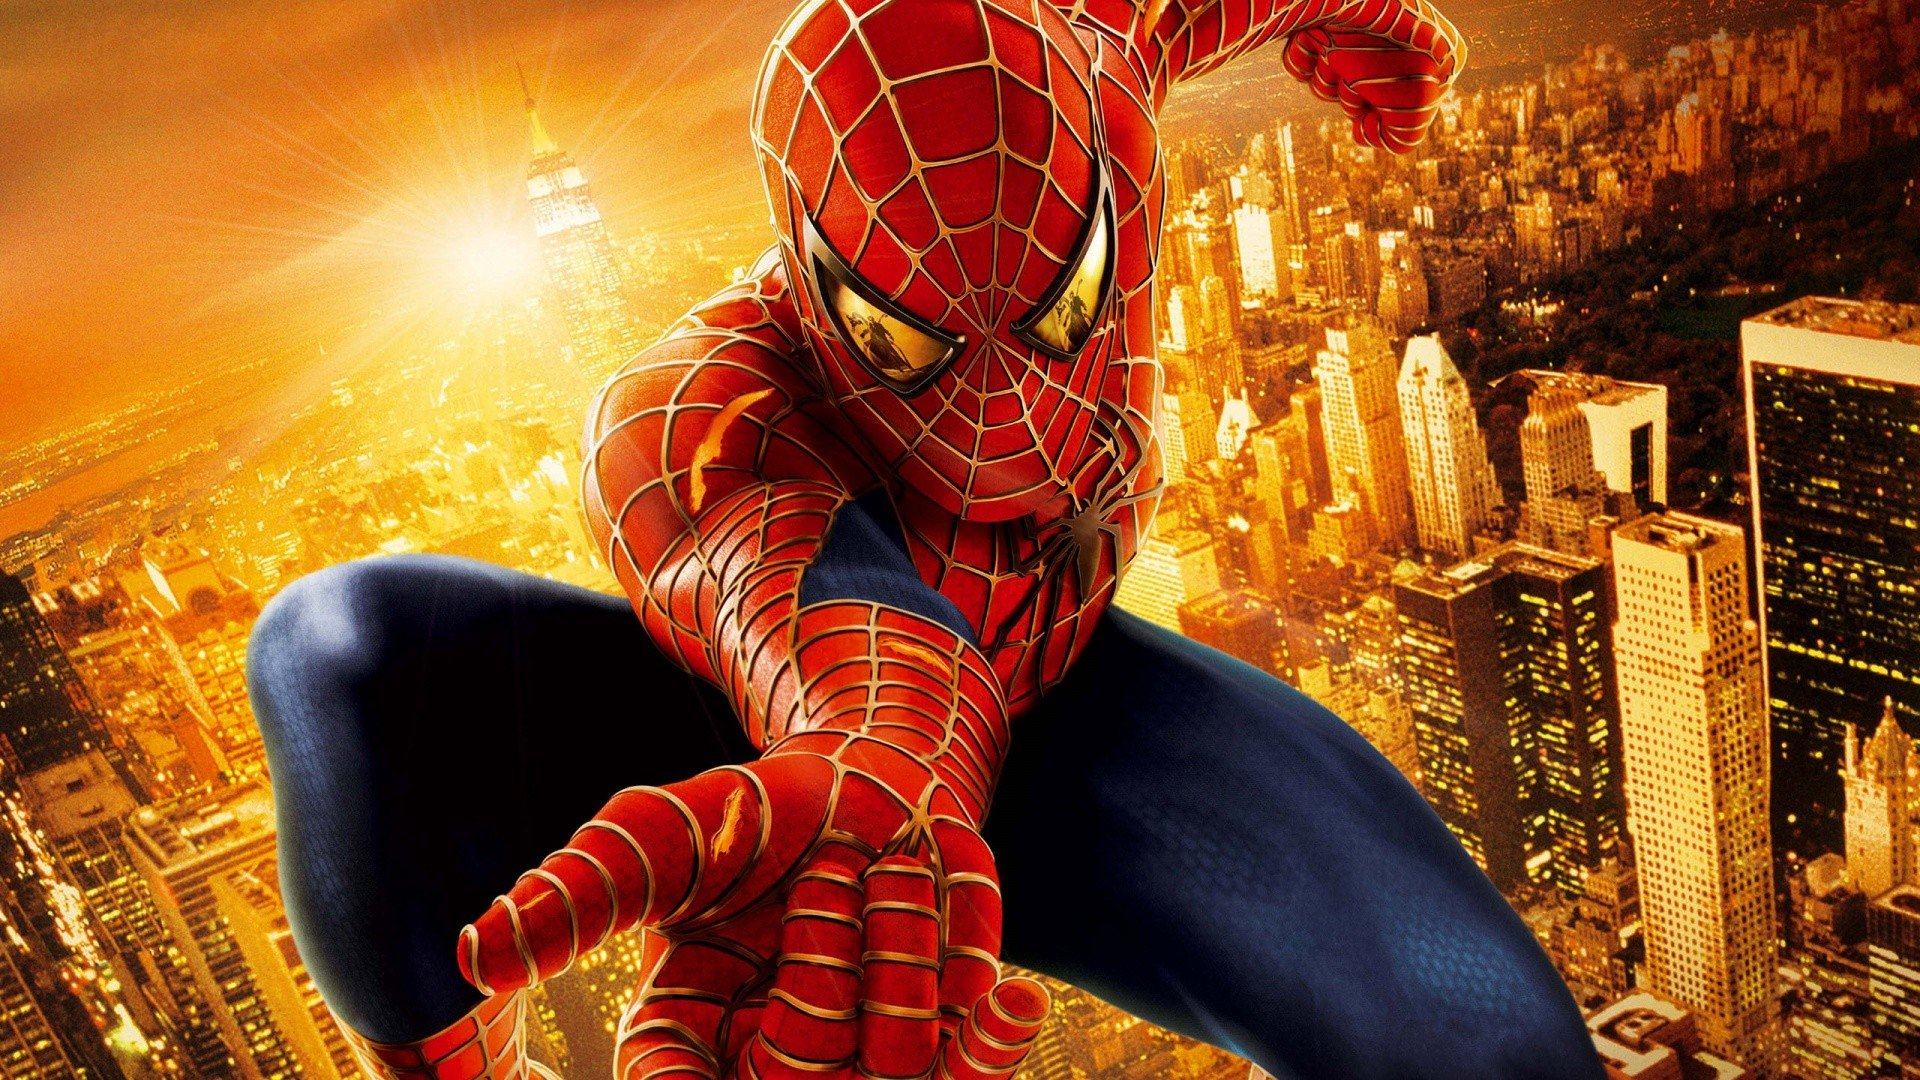 awesome spider-man 2 free wallpaper id:270671 for hd 1080p computer